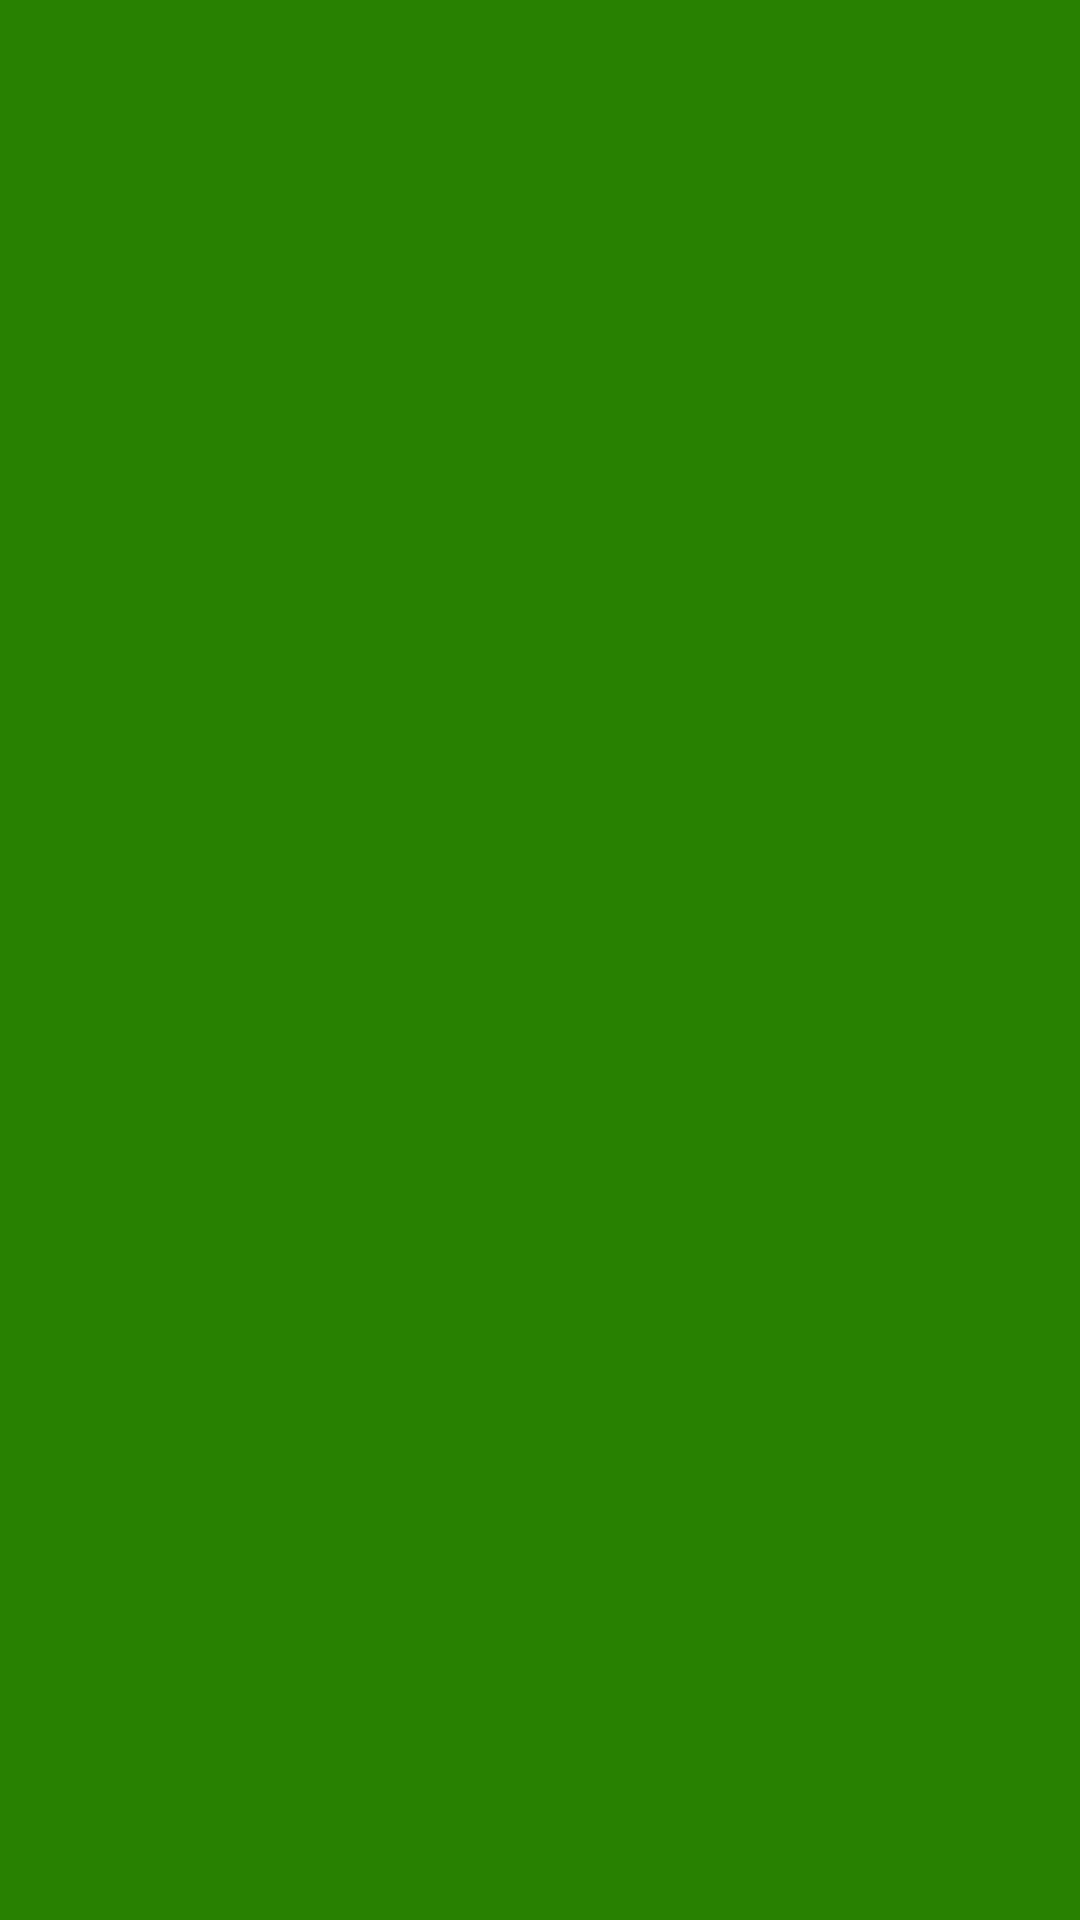 1080x1920 Napier Green Solid Color Background